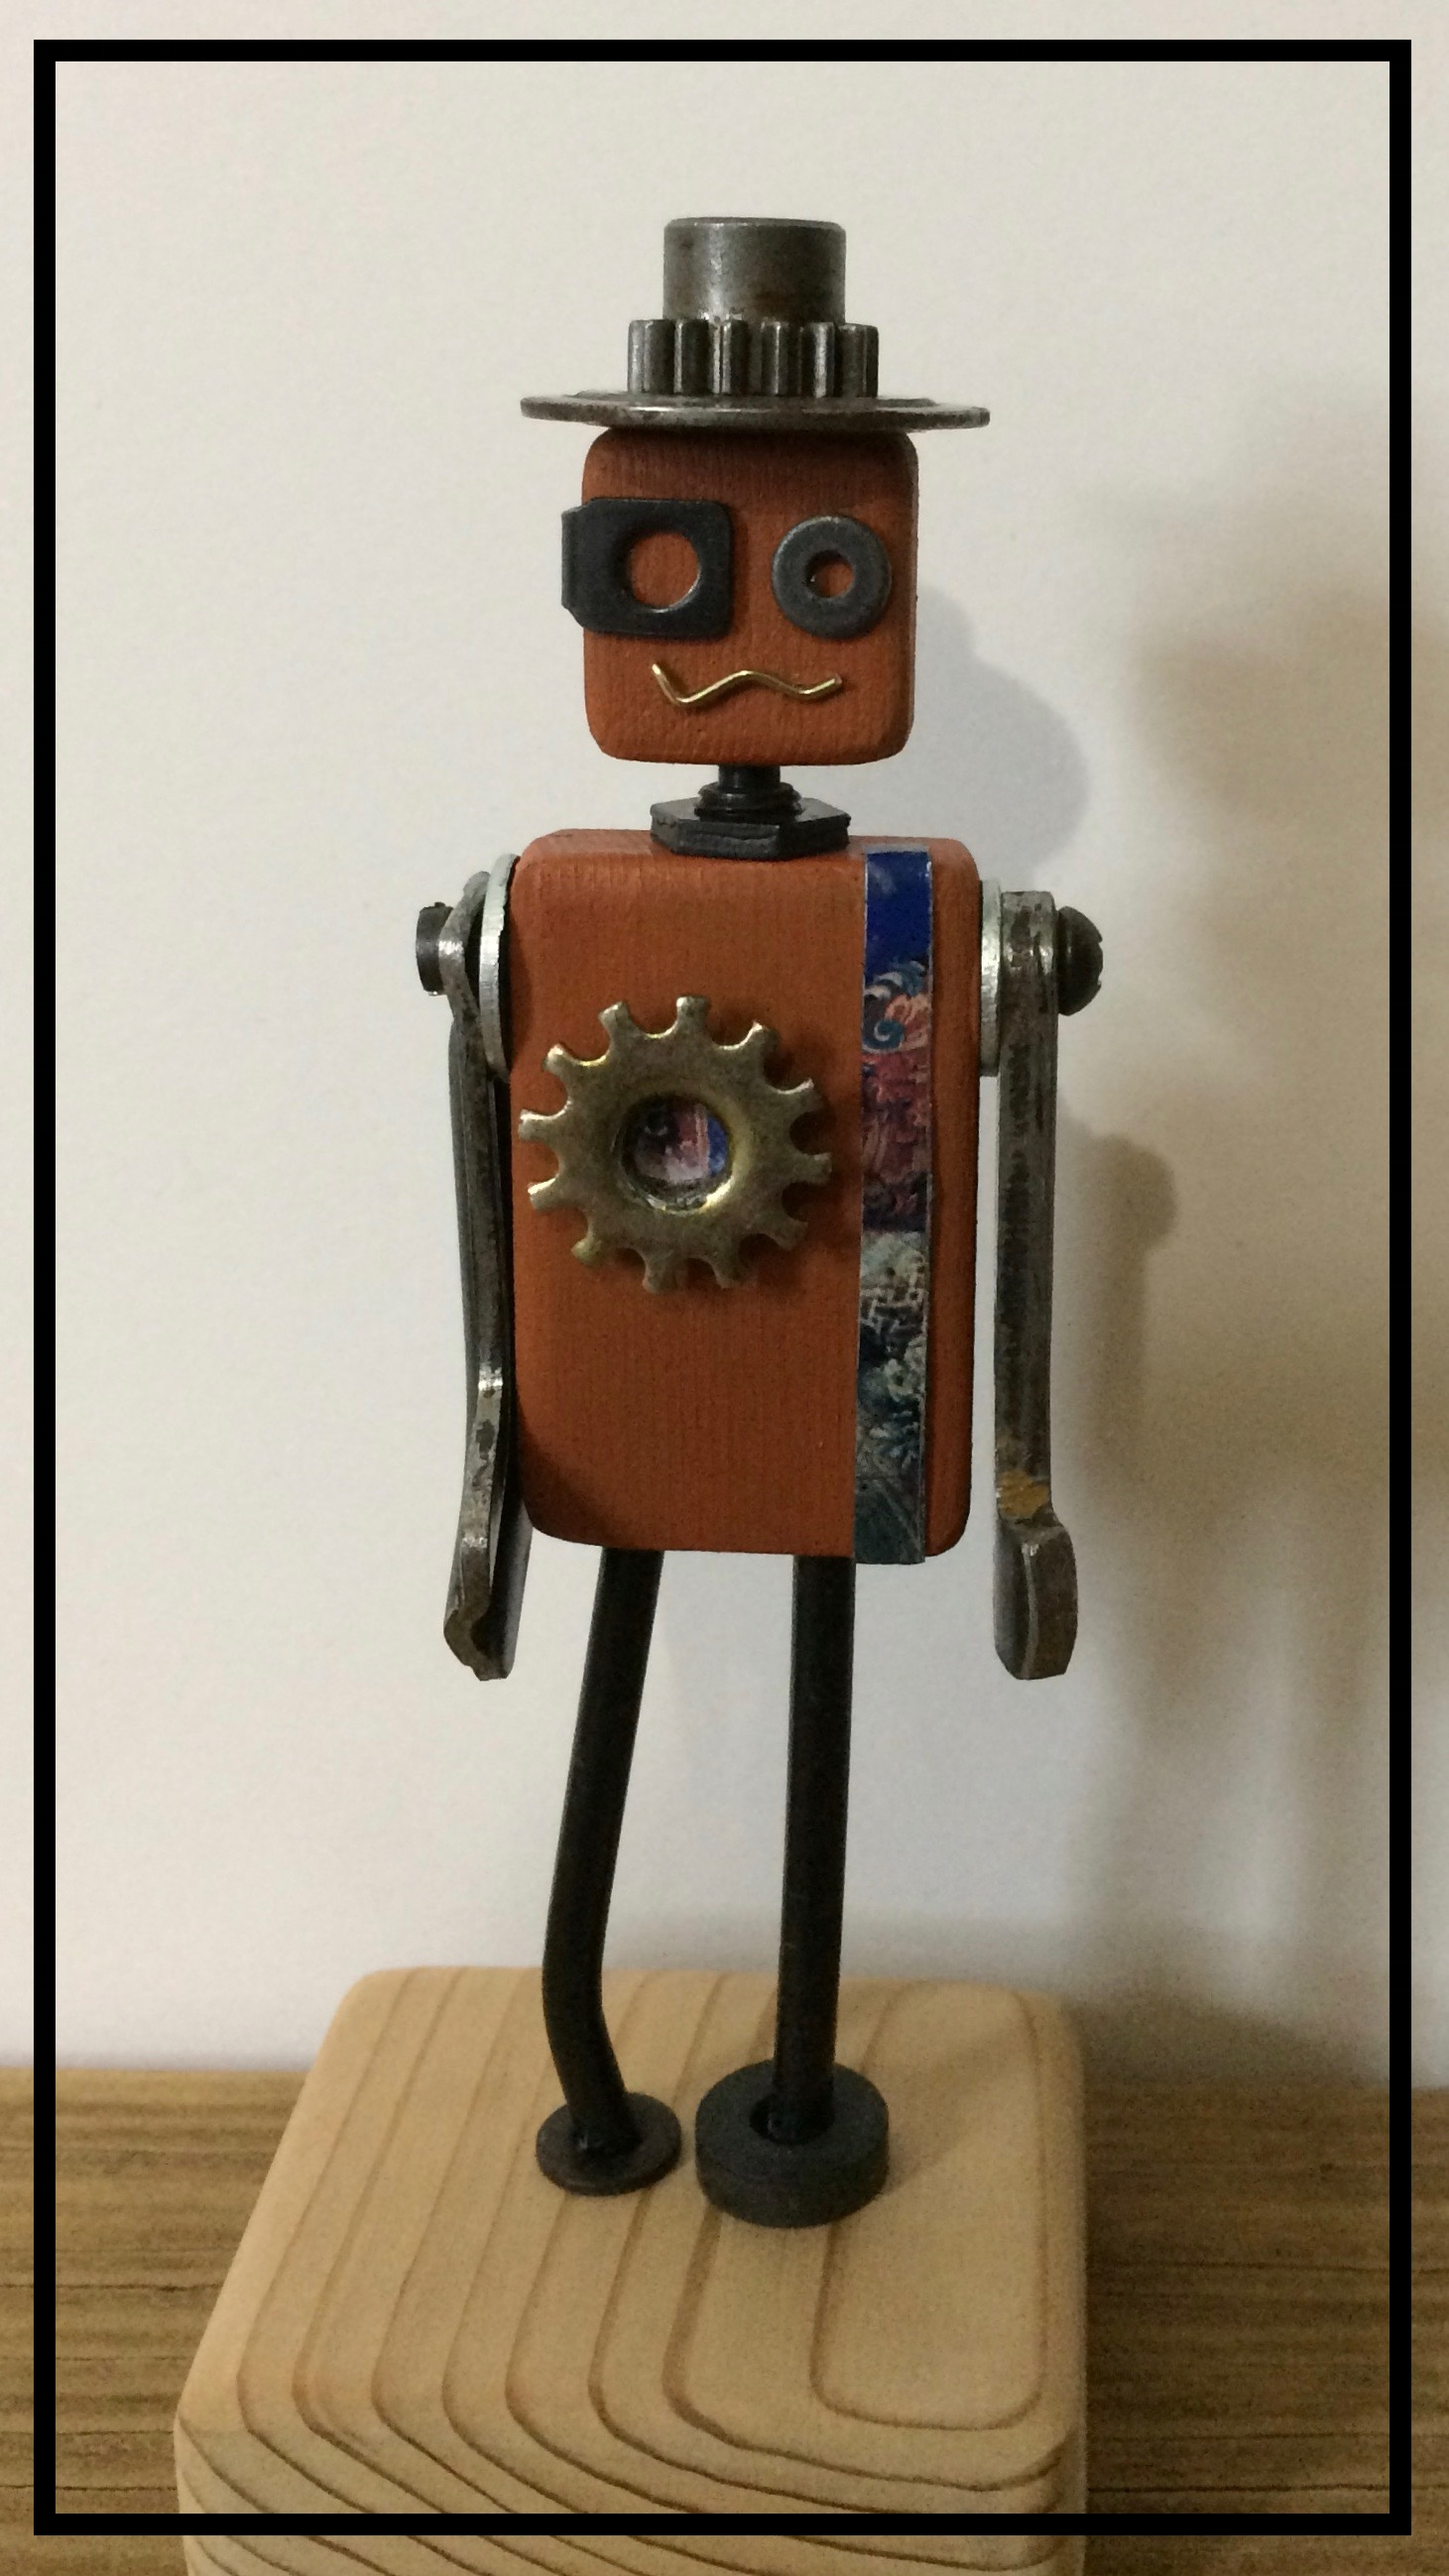 Upcycled robot